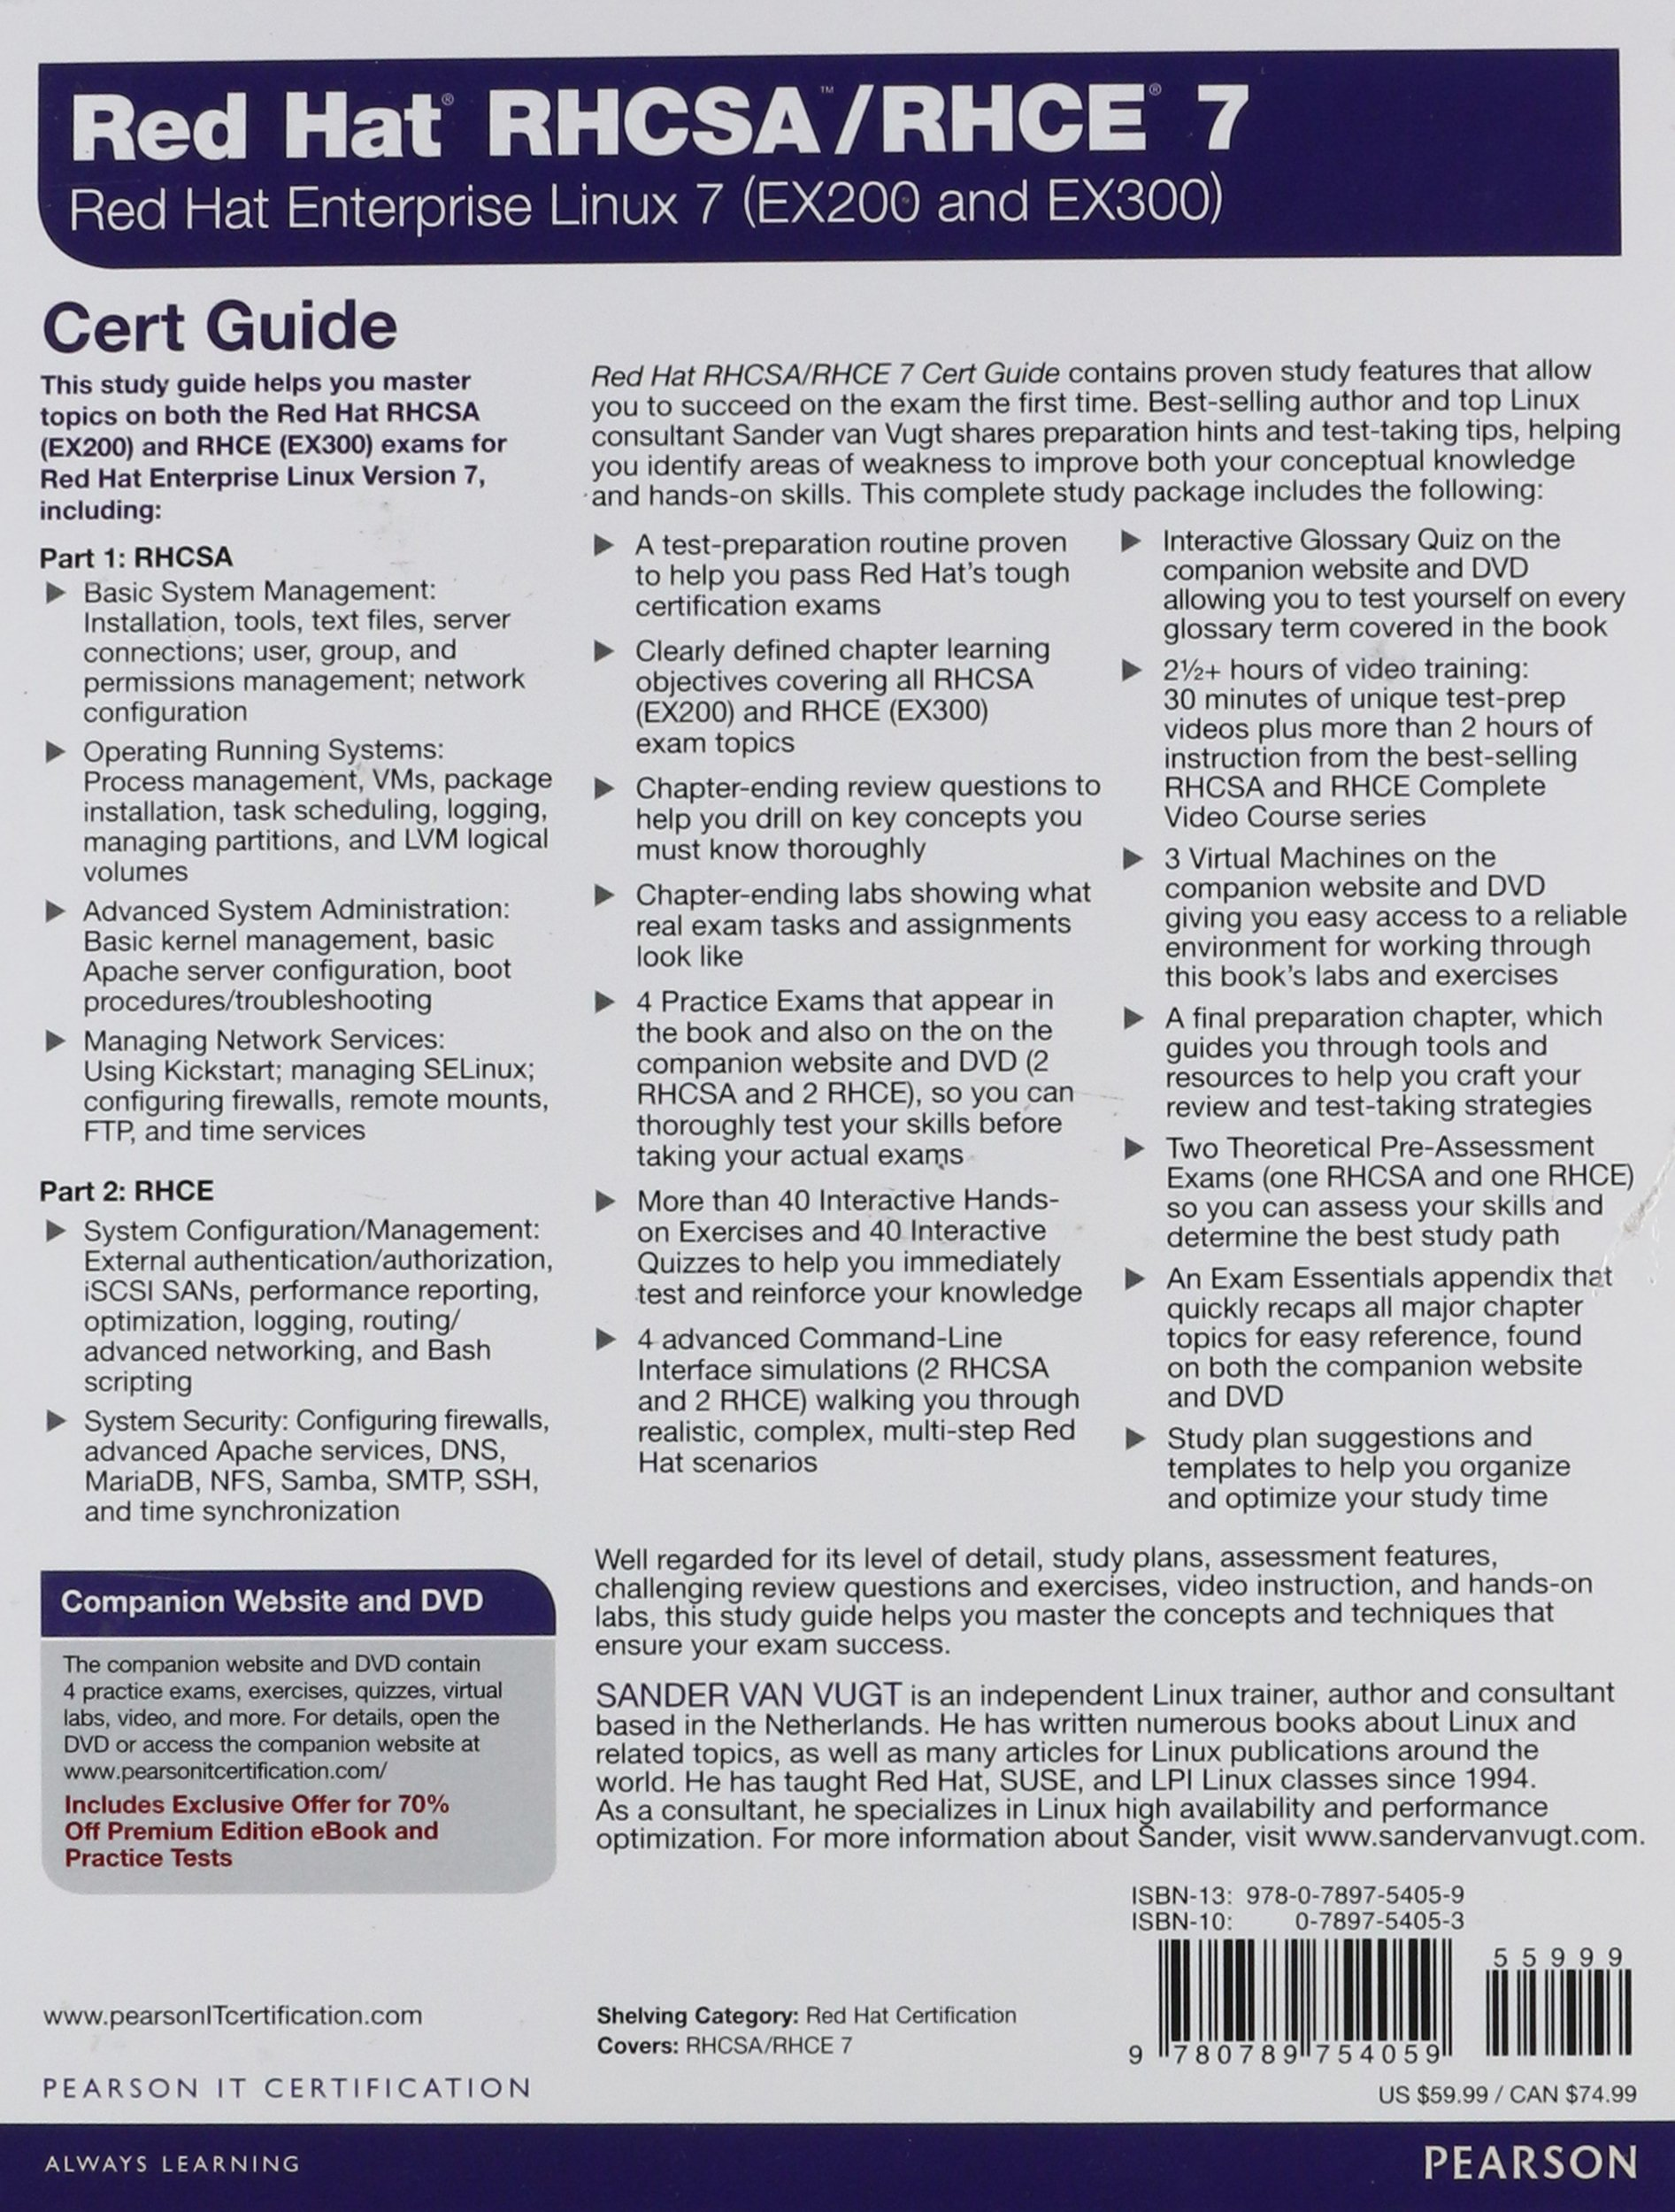 Red hat rhcsa rhce 7 cert guide red hat enterprise linux 7 ex200 and ex300 certification guide amazon de sander van vugt fremdsprachige b cher